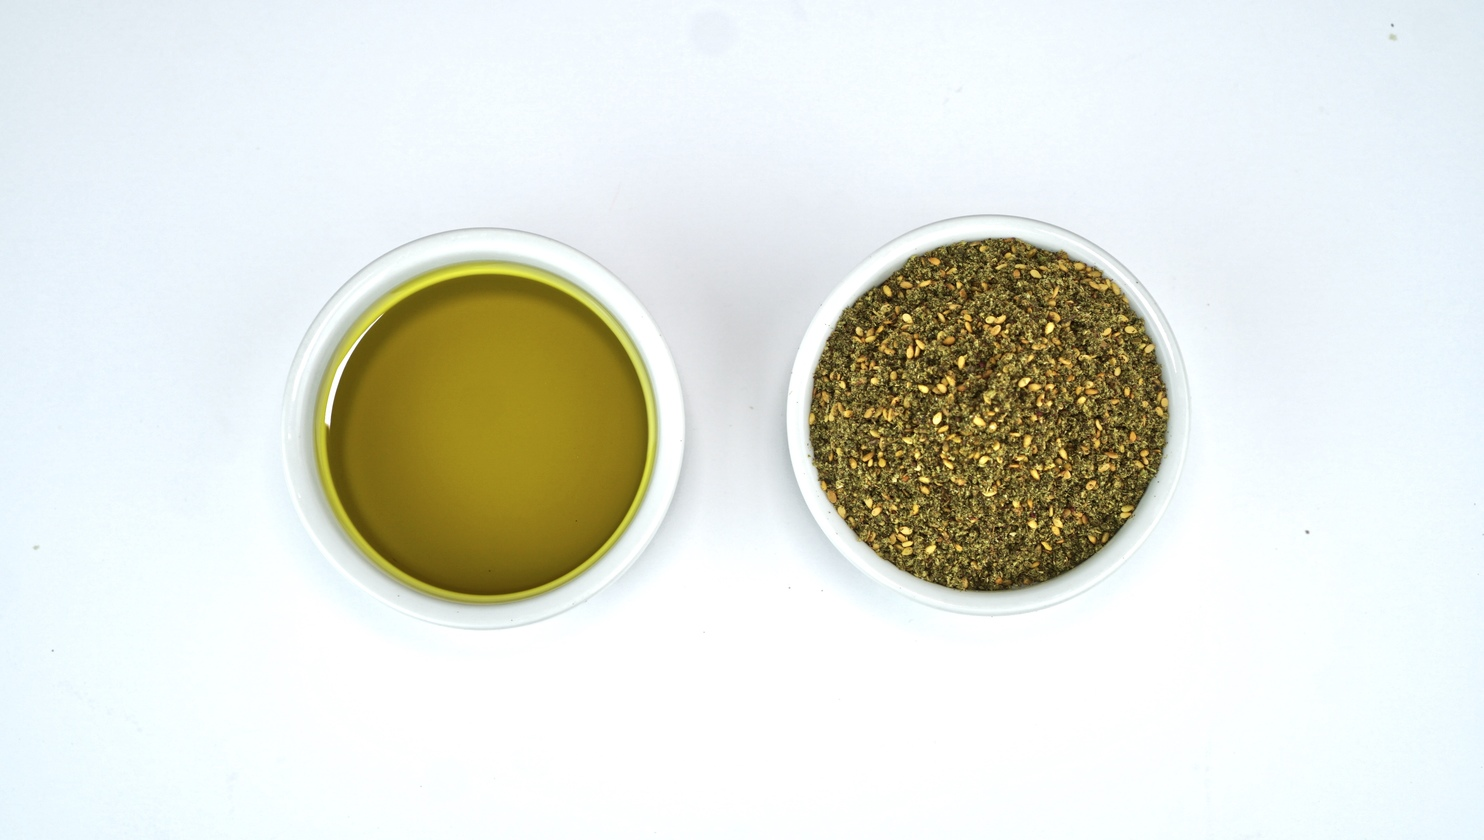 Za'atar herbs boast significant health-enhancing properties, since sumac, thyme, and oregano are all chock full of flavonoids, organic compounds that are important dietary sources of antioxidants that can protect cells from damage.